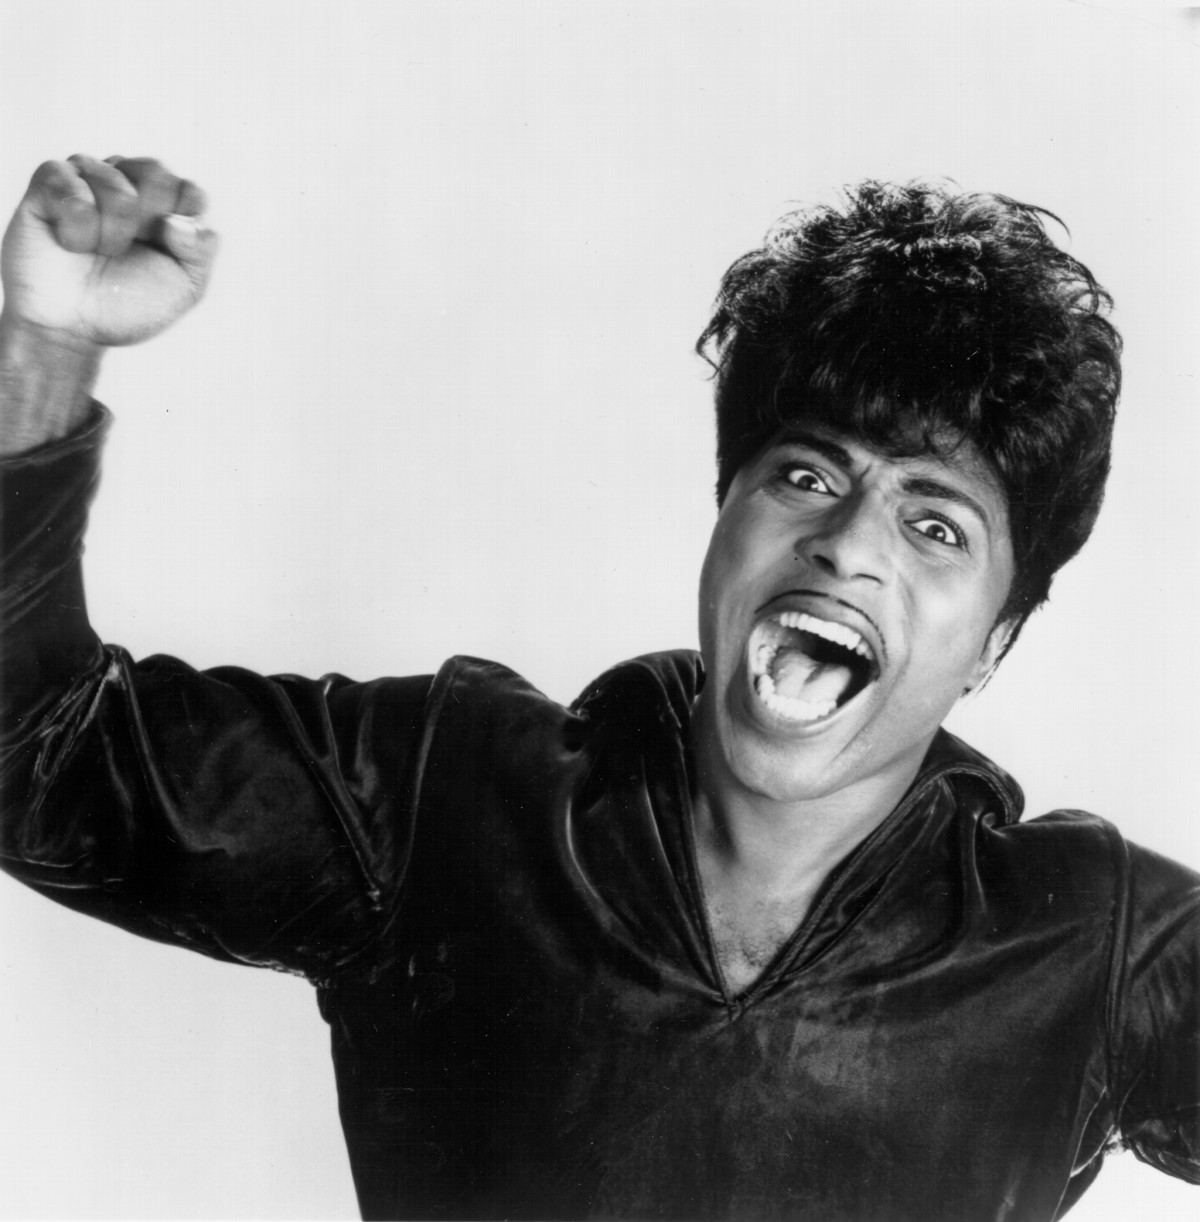 Little Richard: a frequency queer fans could relate to, even if they  couldn't say it out loud